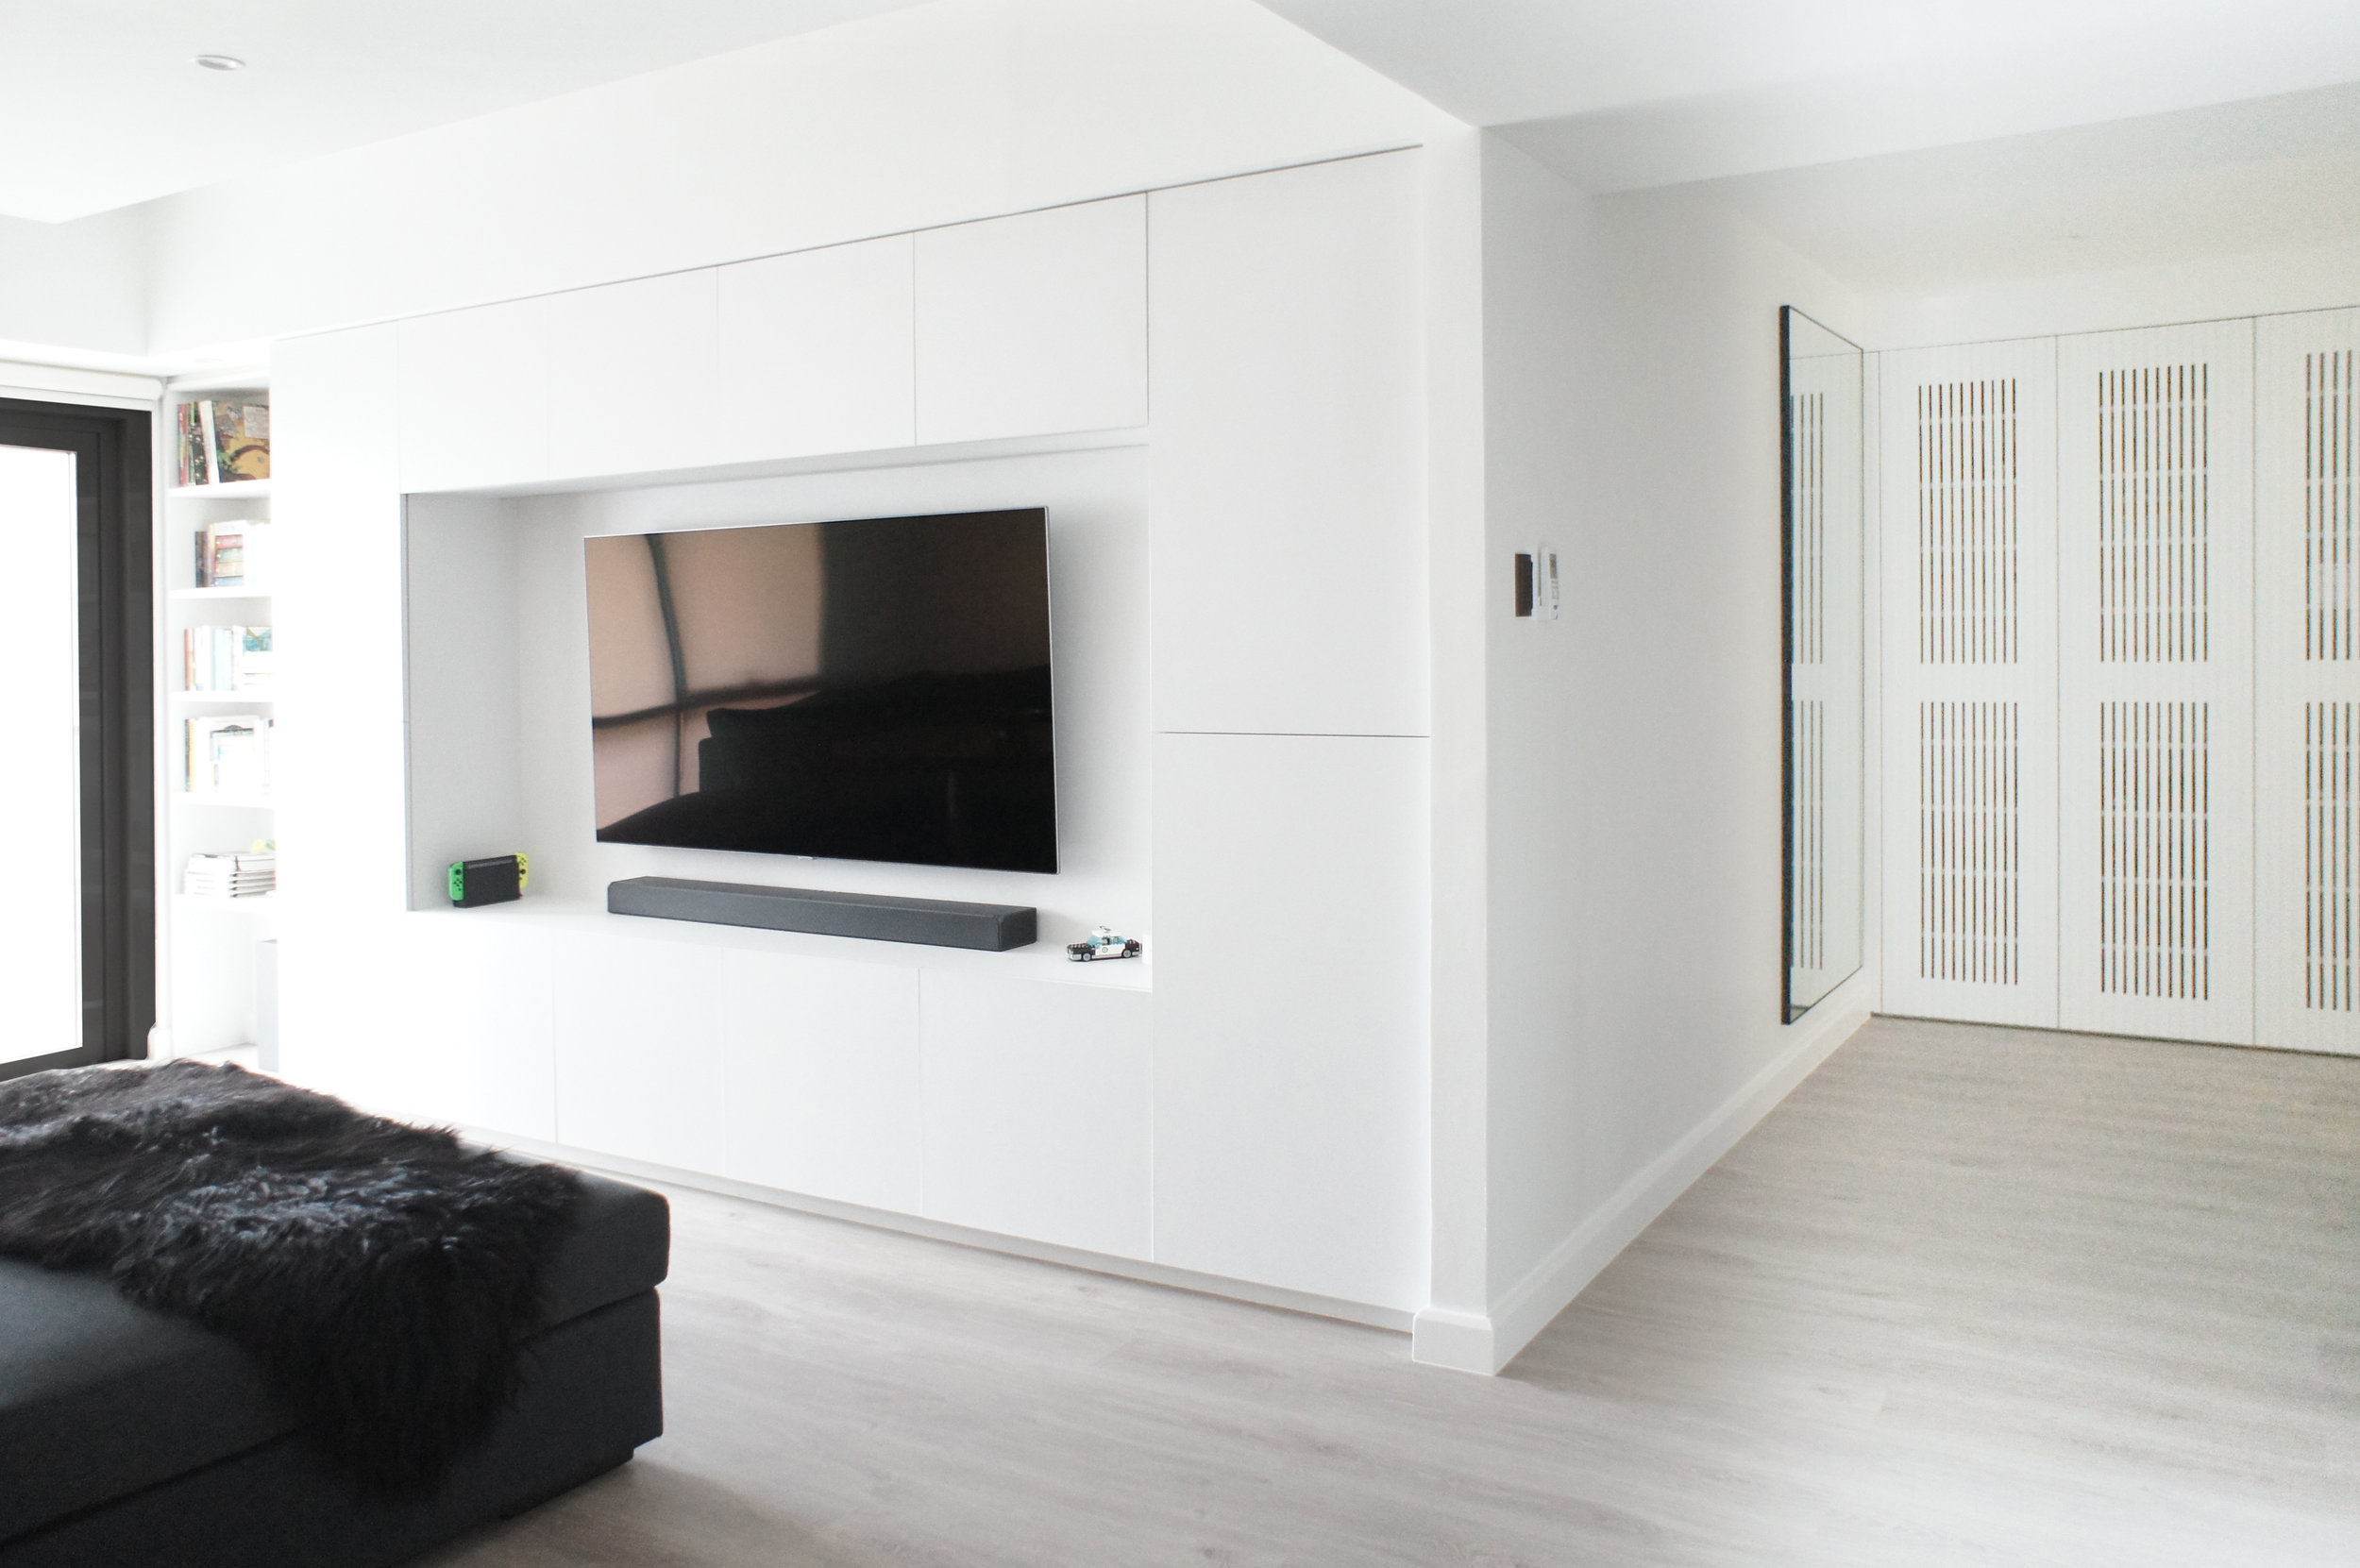 A fully built out media wall with floor to ceiling storage and precise measurements inside to house all media equipment. A narrow area is allocated to frequently read books.